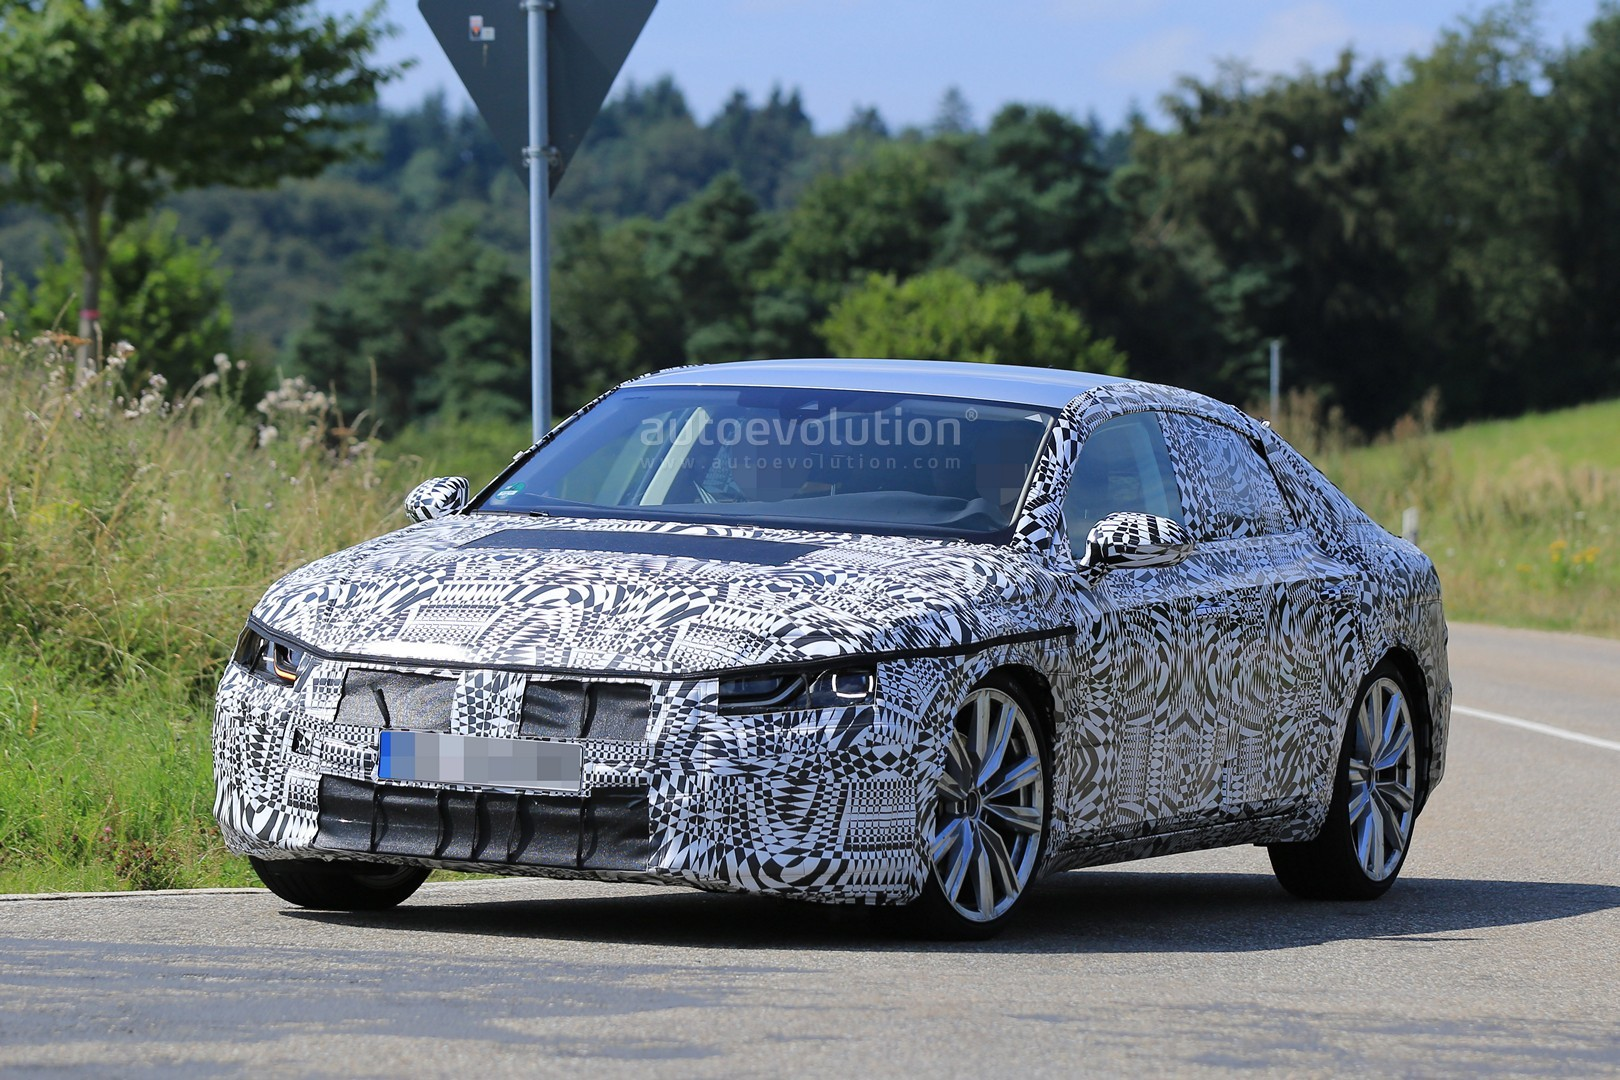 2018 Vw Gti Order Guide >> 2018 Volkswagen CC Spied Benchmarking Against 2016 Ford Focus RS - autoevolution